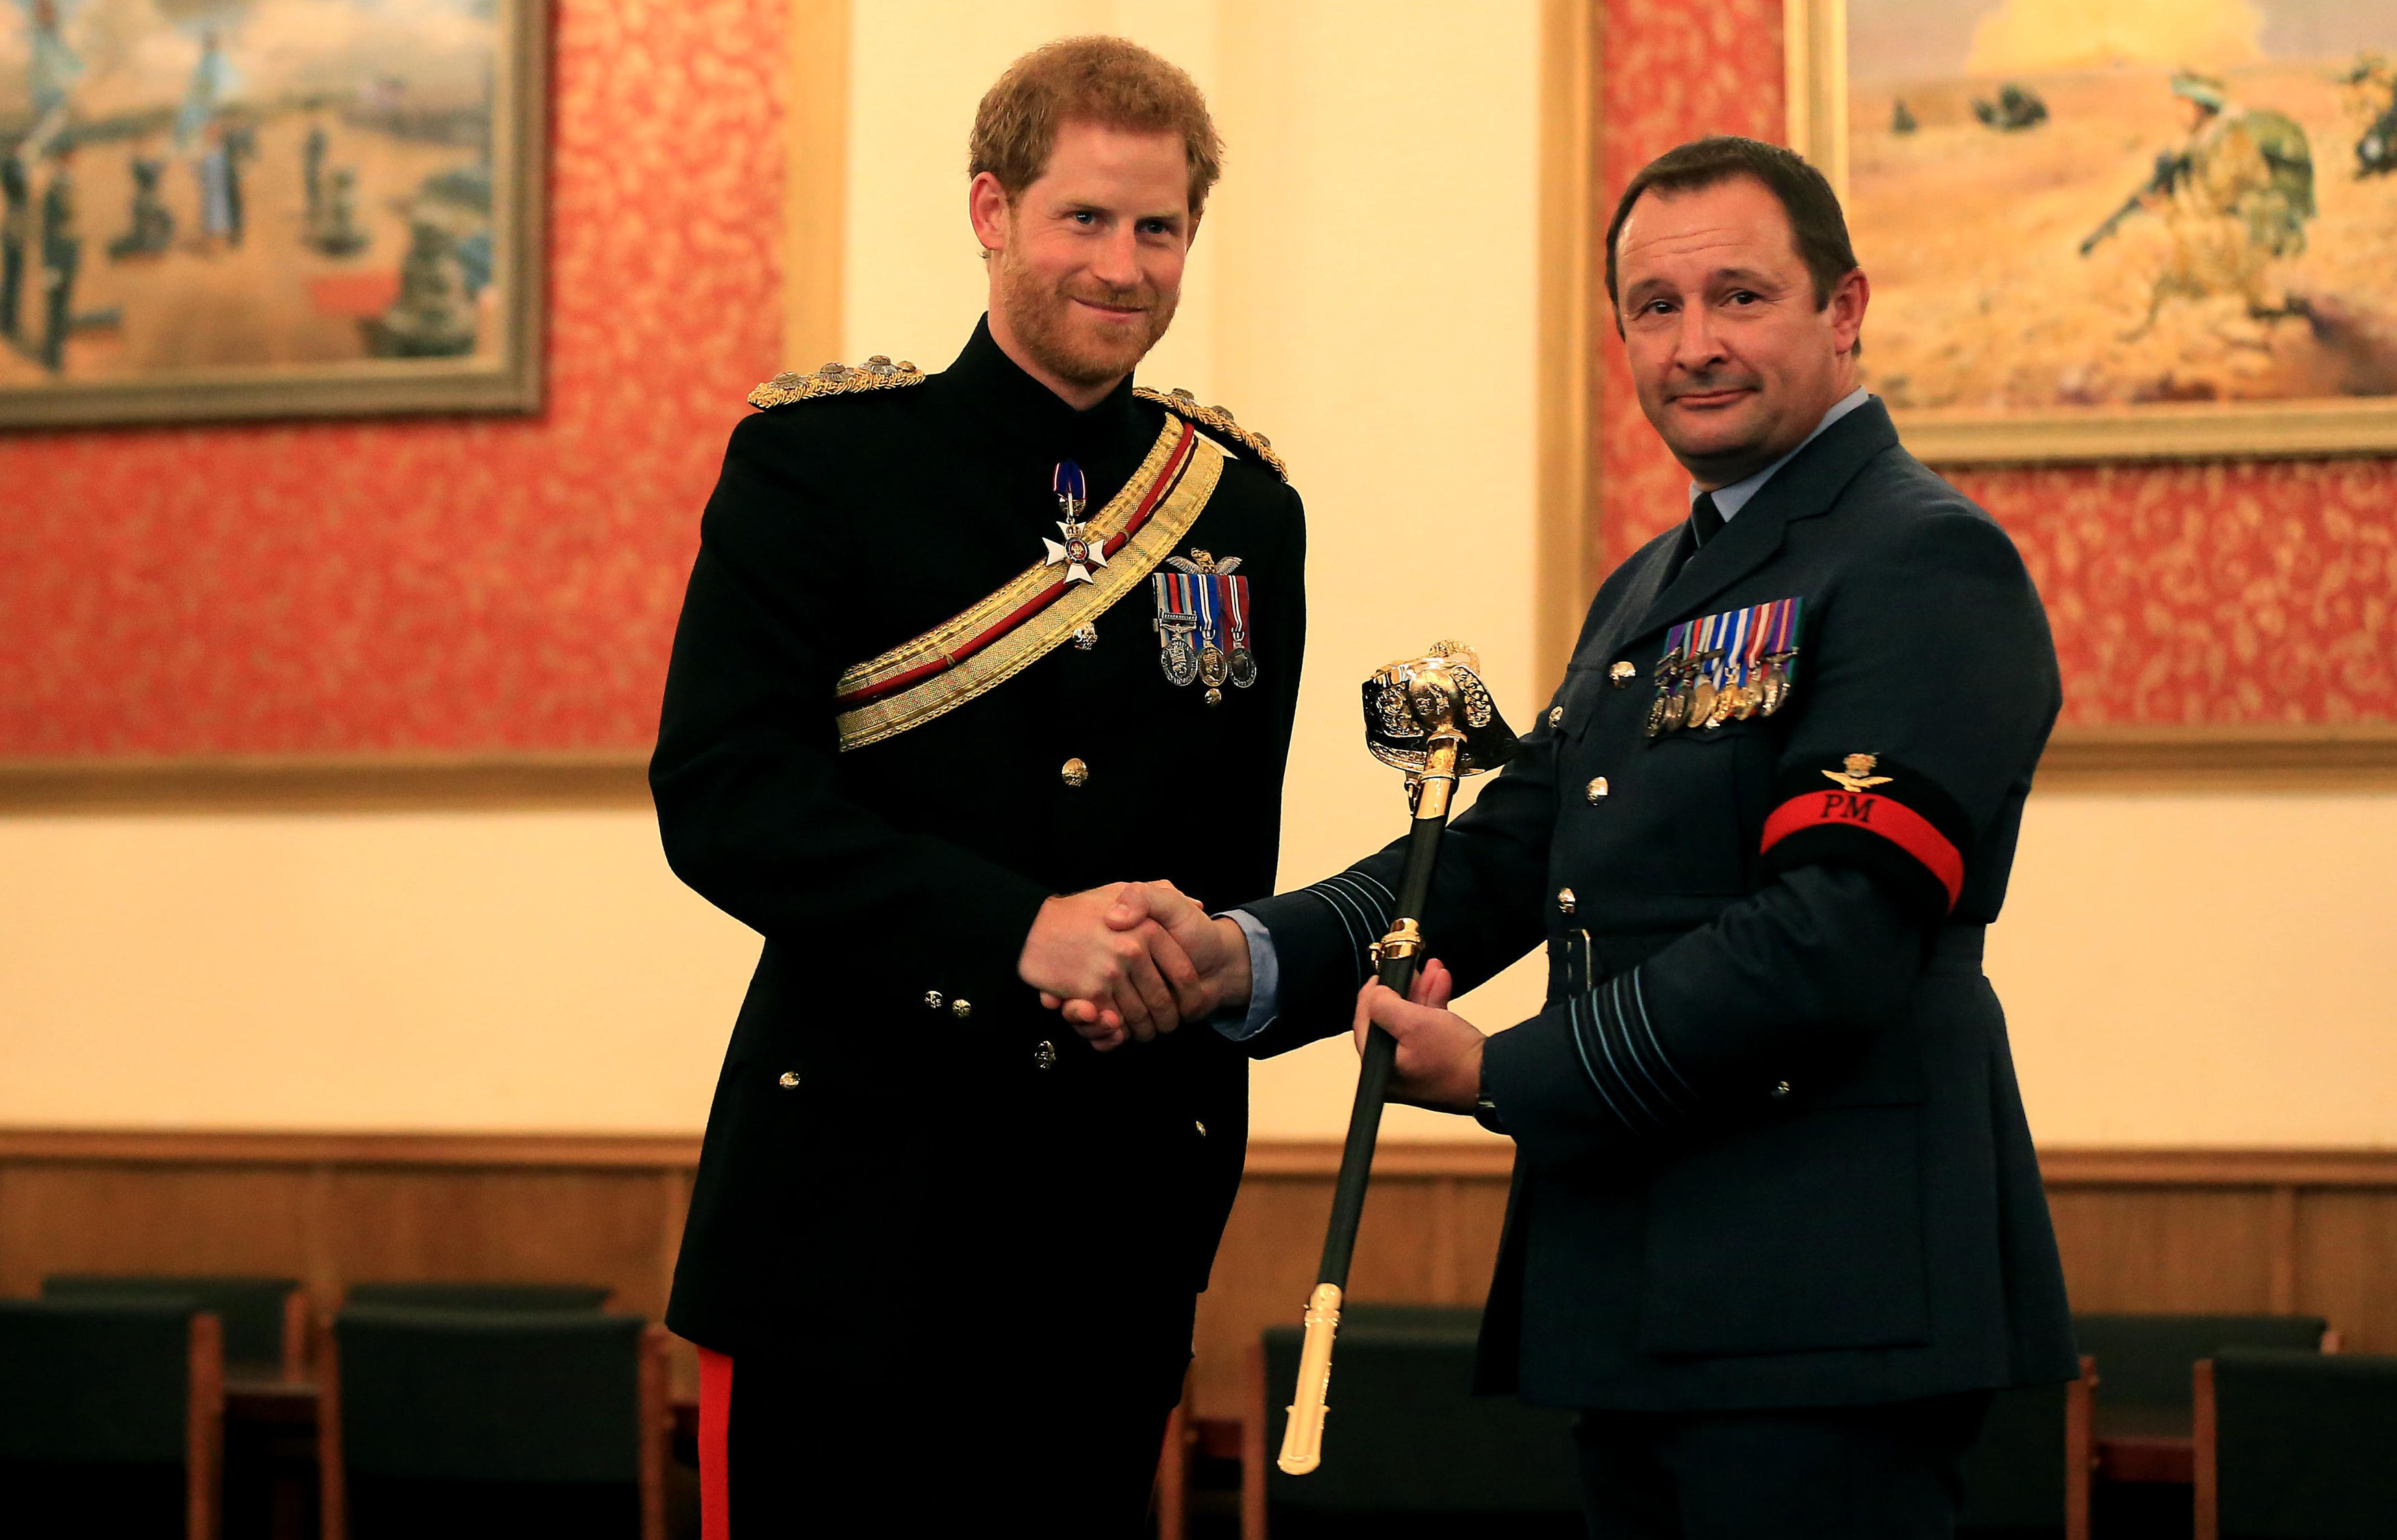 Prince Harry presents The Firmin Sword of Peace to the RAF Police